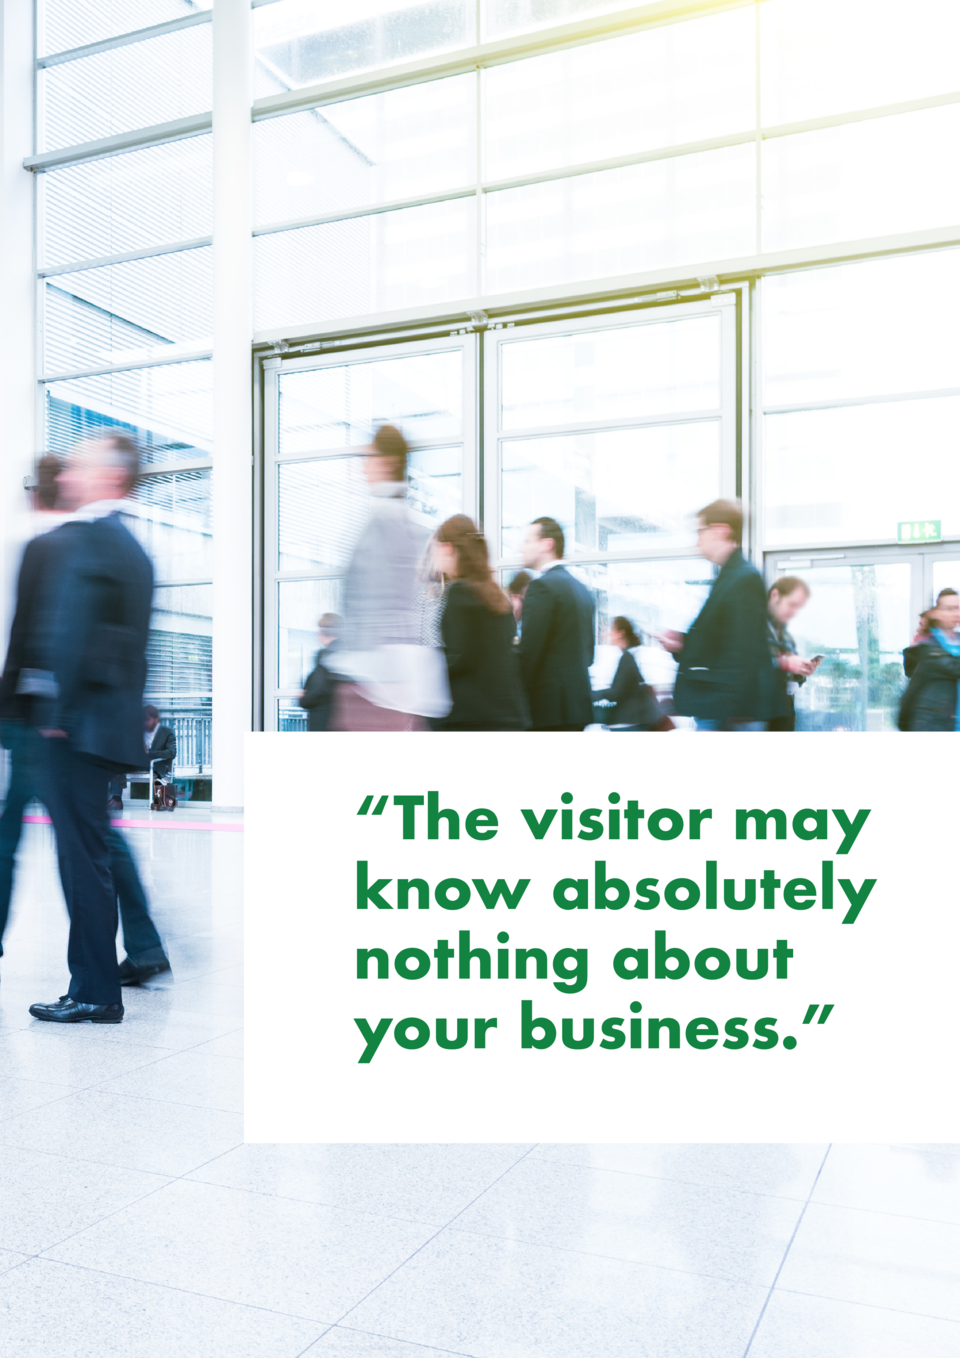 The visitor may know absolutely nothing about your business.